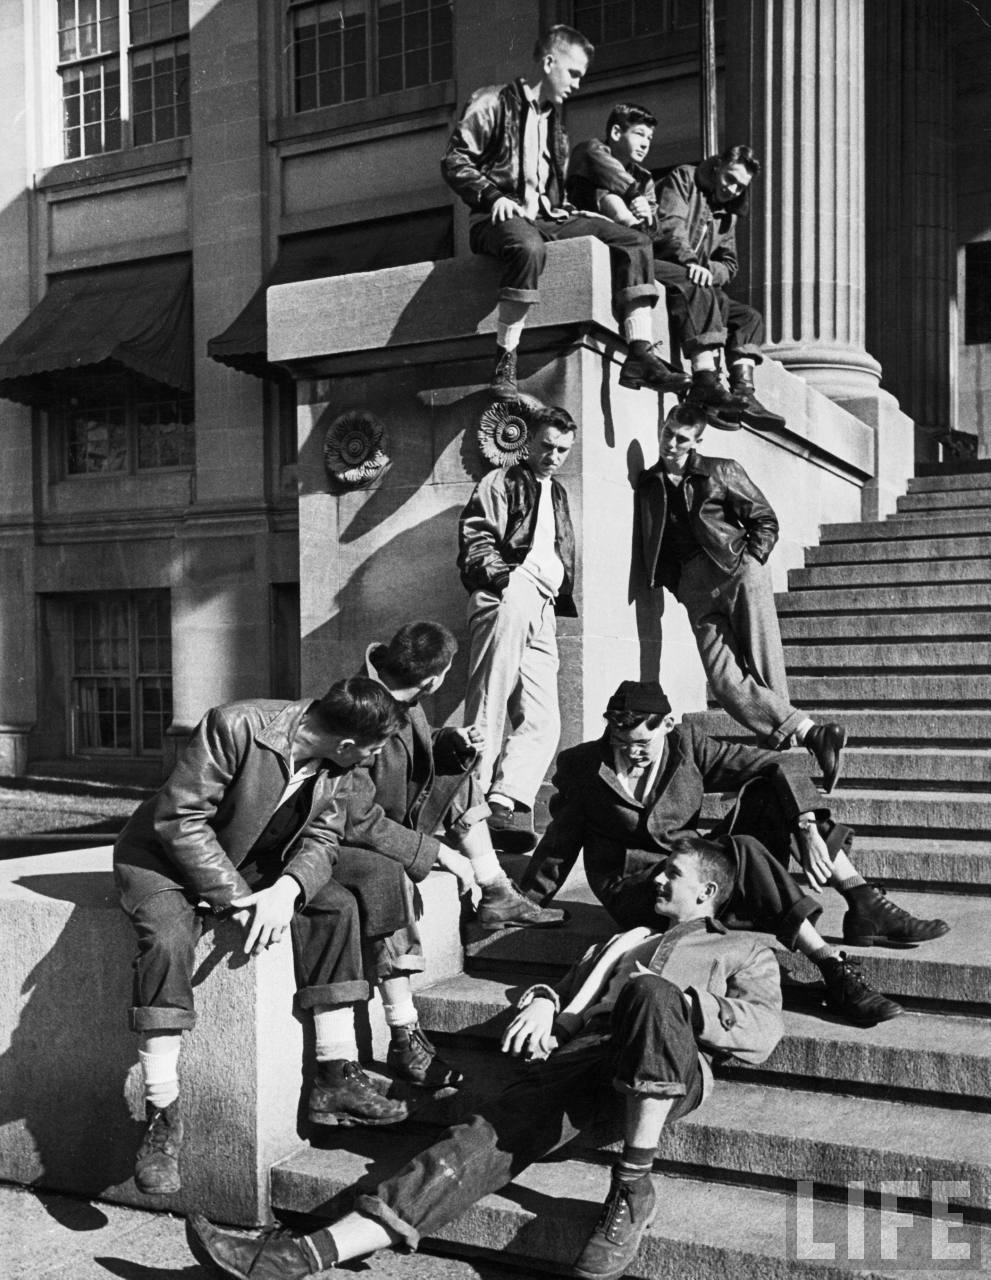 """The Hangout: """"Teenage boys hanging out on the steps of building"""", Iowa, 1948(via LIFE)"""